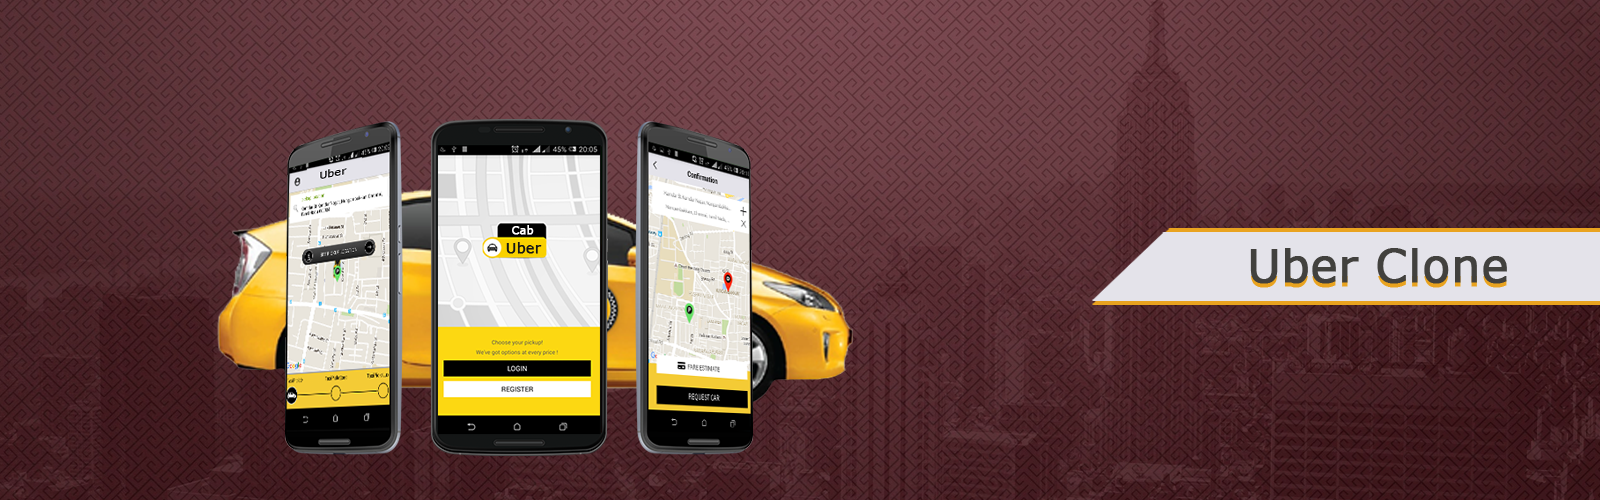 Taxi Driver App Development | Best Taxi Booking App Development Services By  Protolabz Eservices - Buy Best Taxi Dispatch Software System,Cab & Taxi